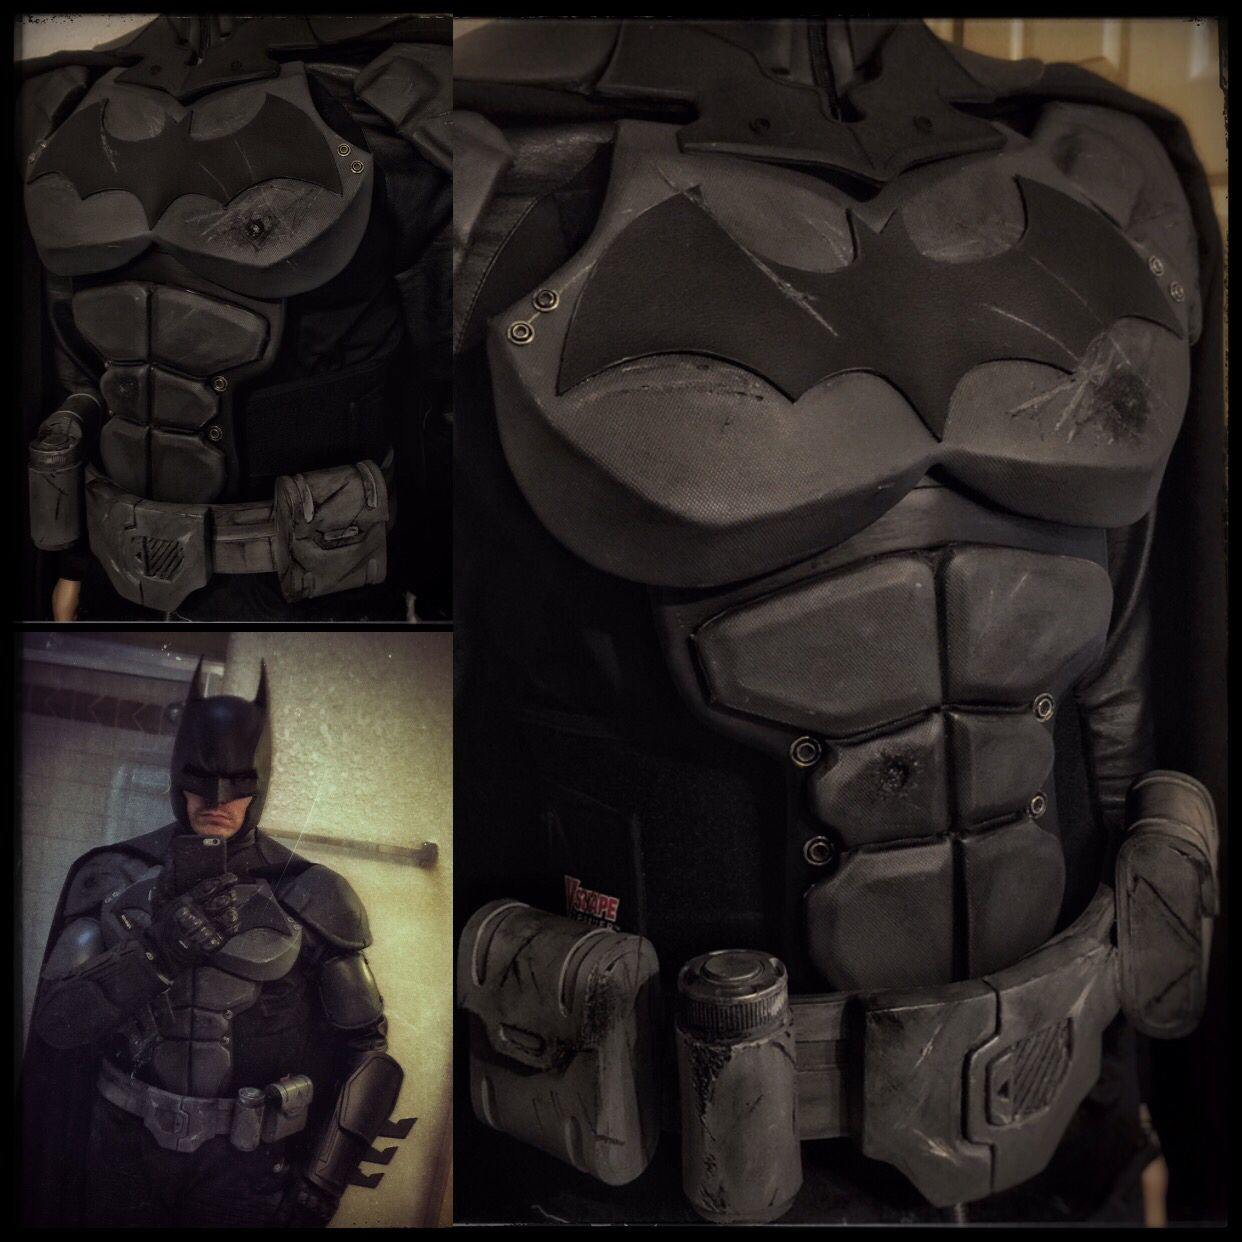 Batman Arkham Knight Batcave: Just Finished Making My Batman Arkham Origins Utility Belt